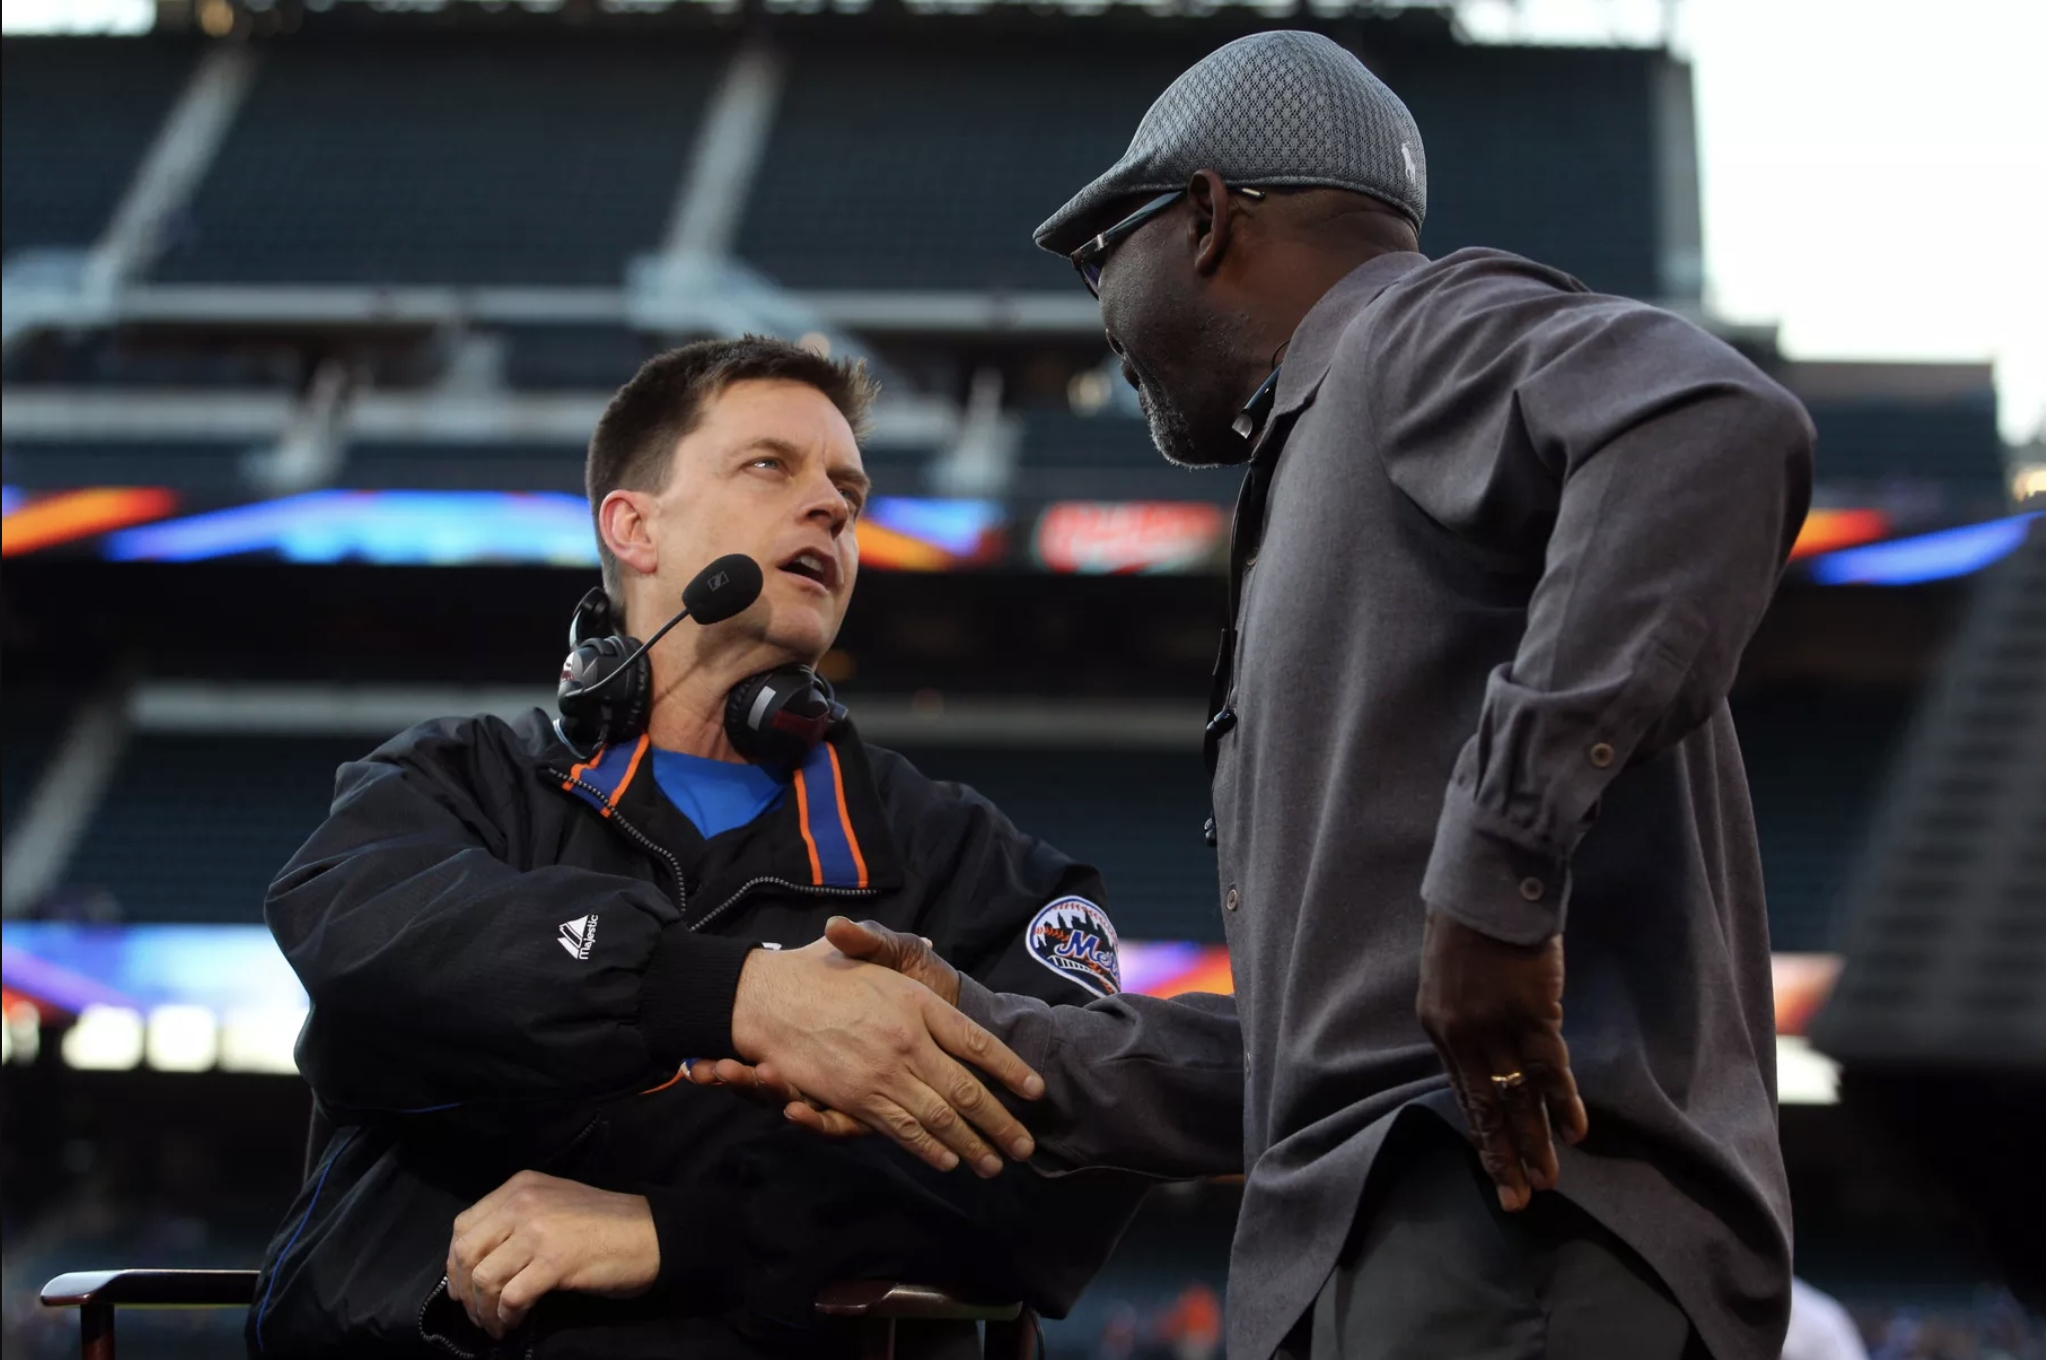 Comedian Jim Breuer reflects on the career of Mets captain David Wright